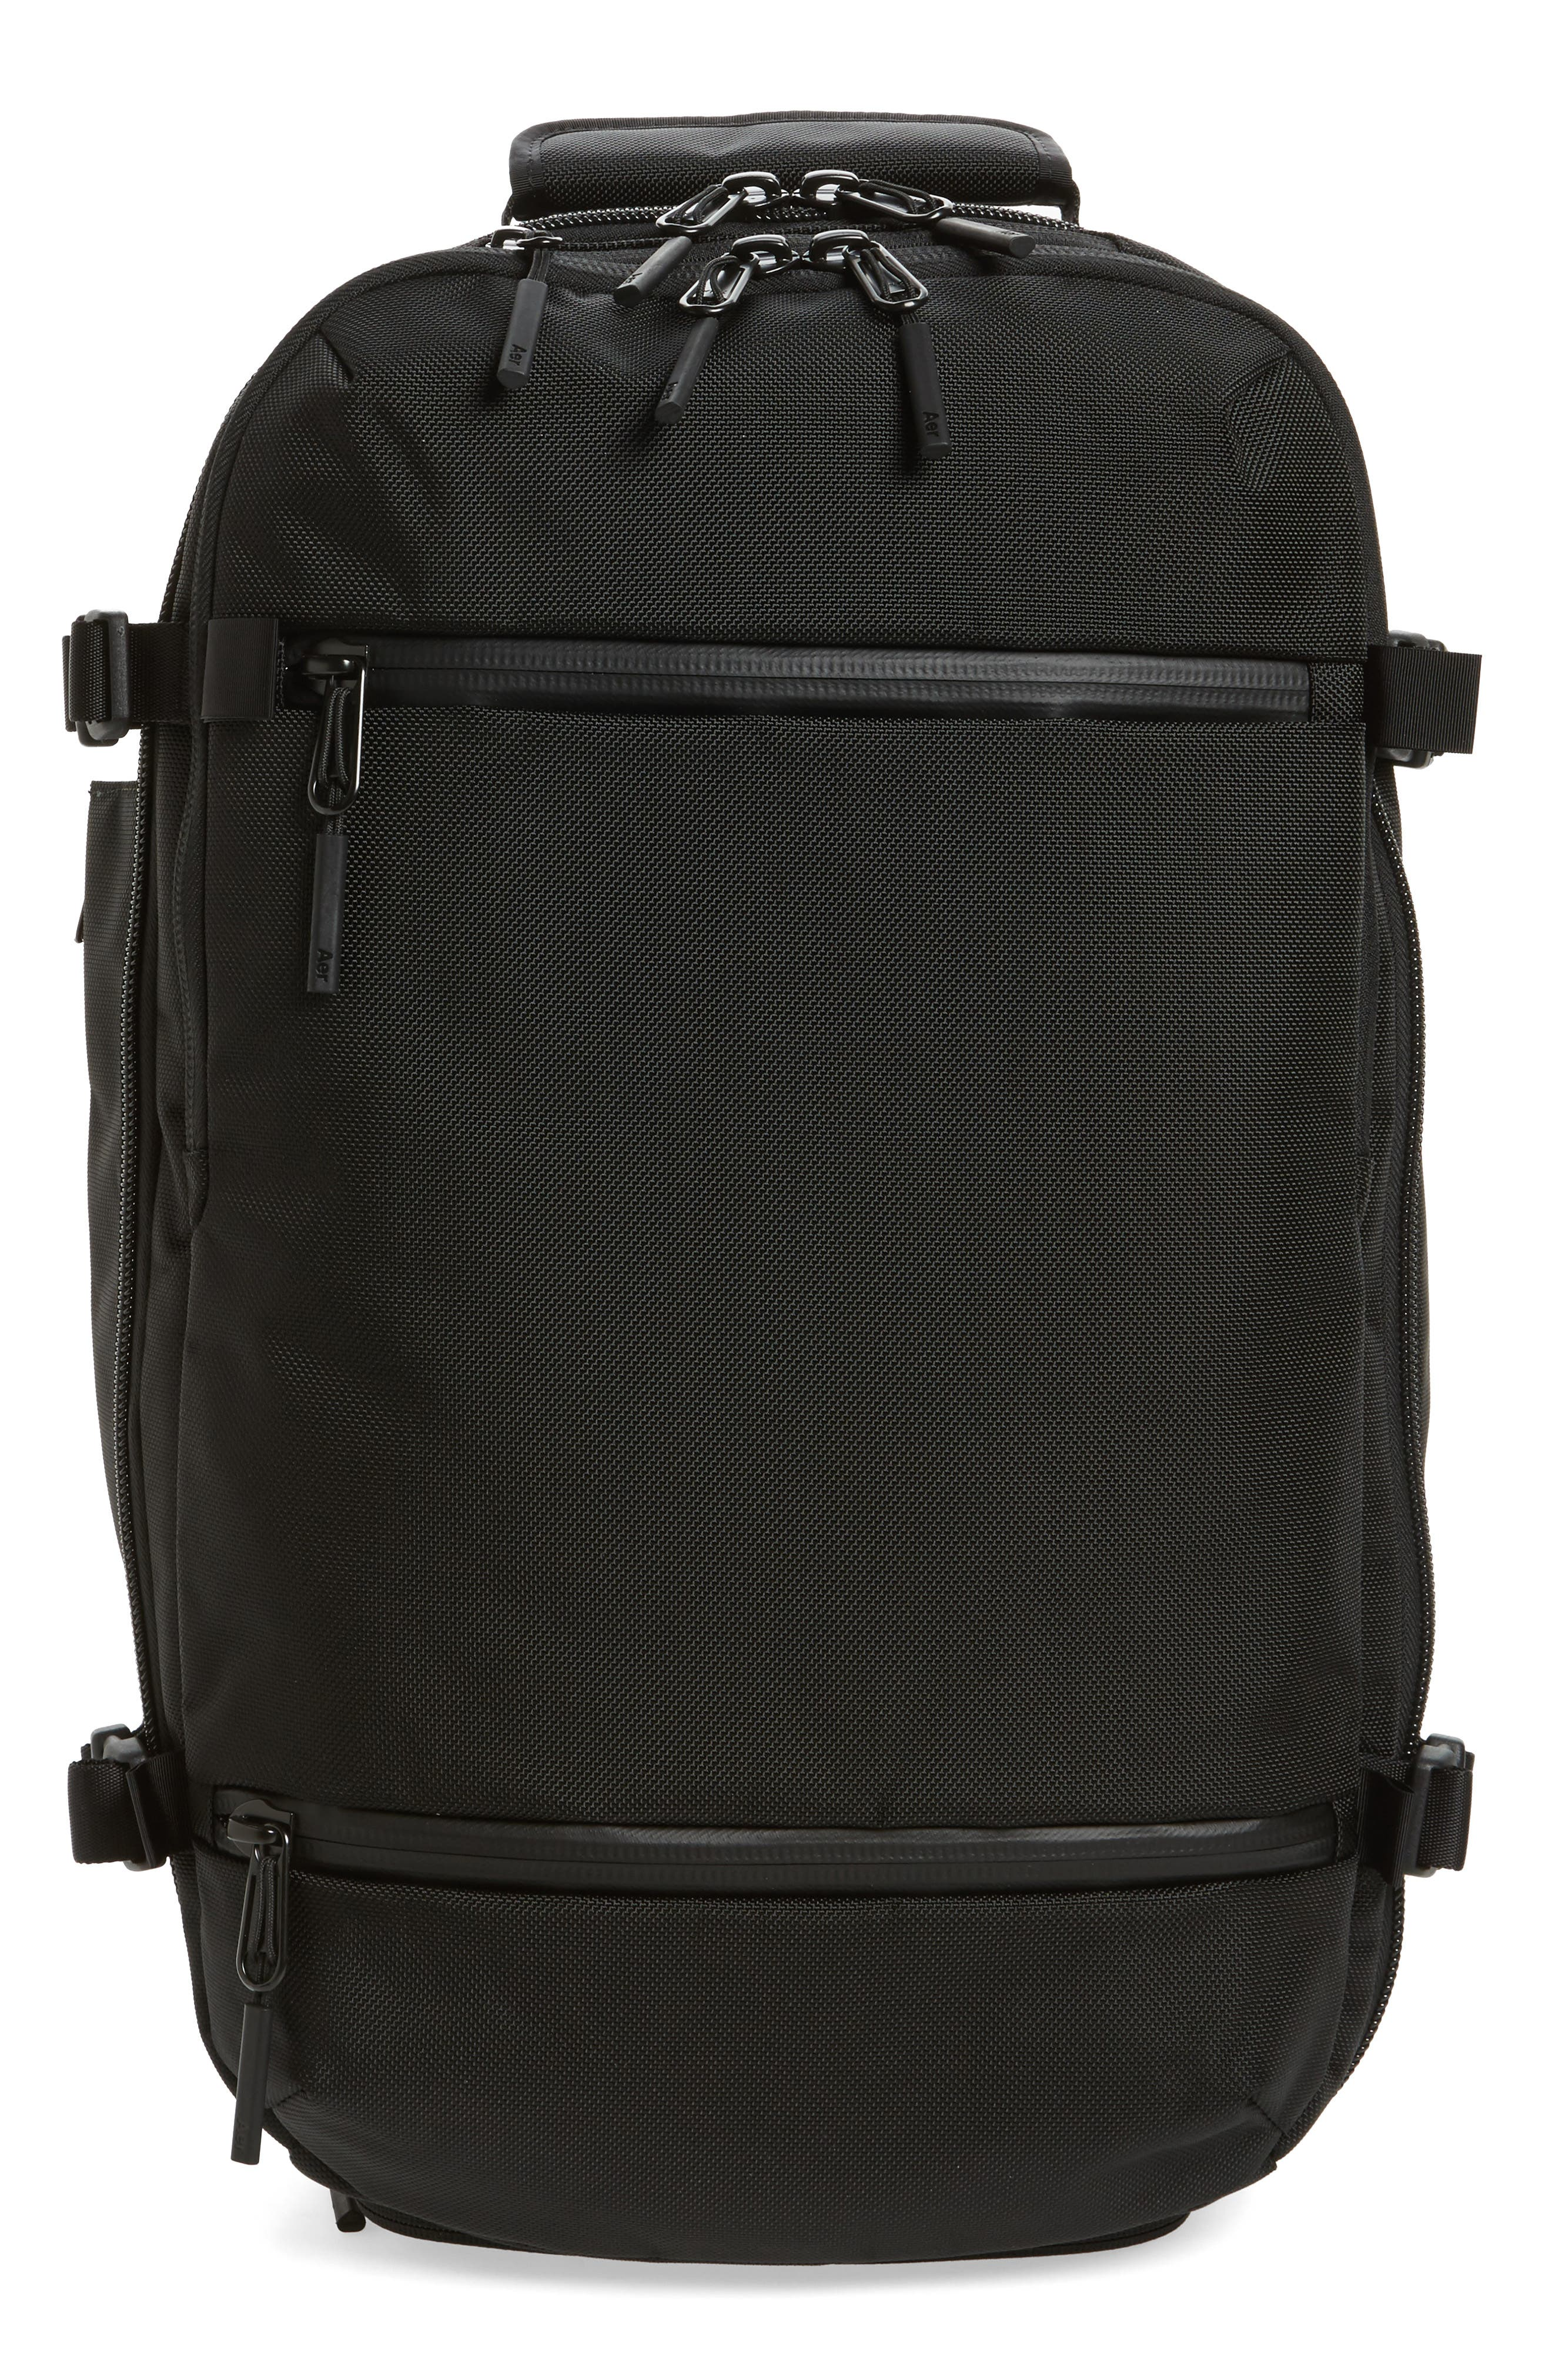 Travel Pack Backpack,                             Main thumbnail 1, color,                             001